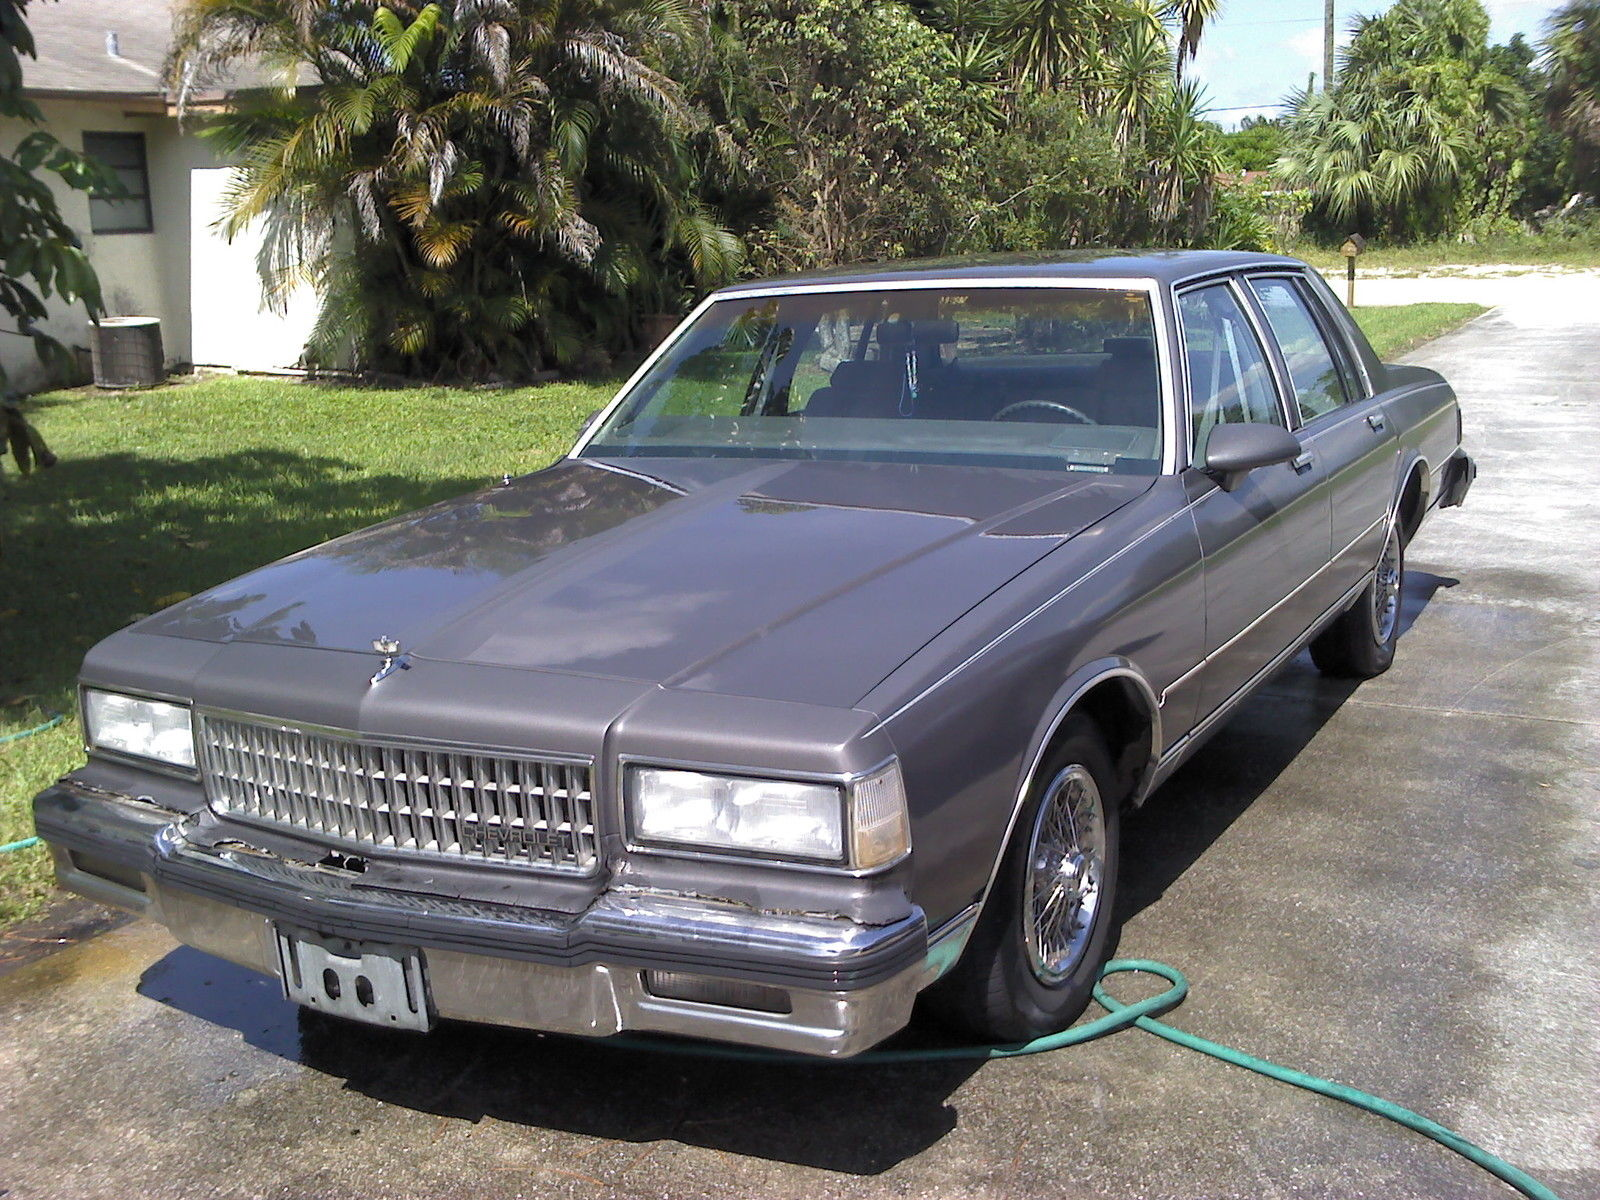 1990 chevy caprice classic last year of this body style for West palm beach motor vehicle registration